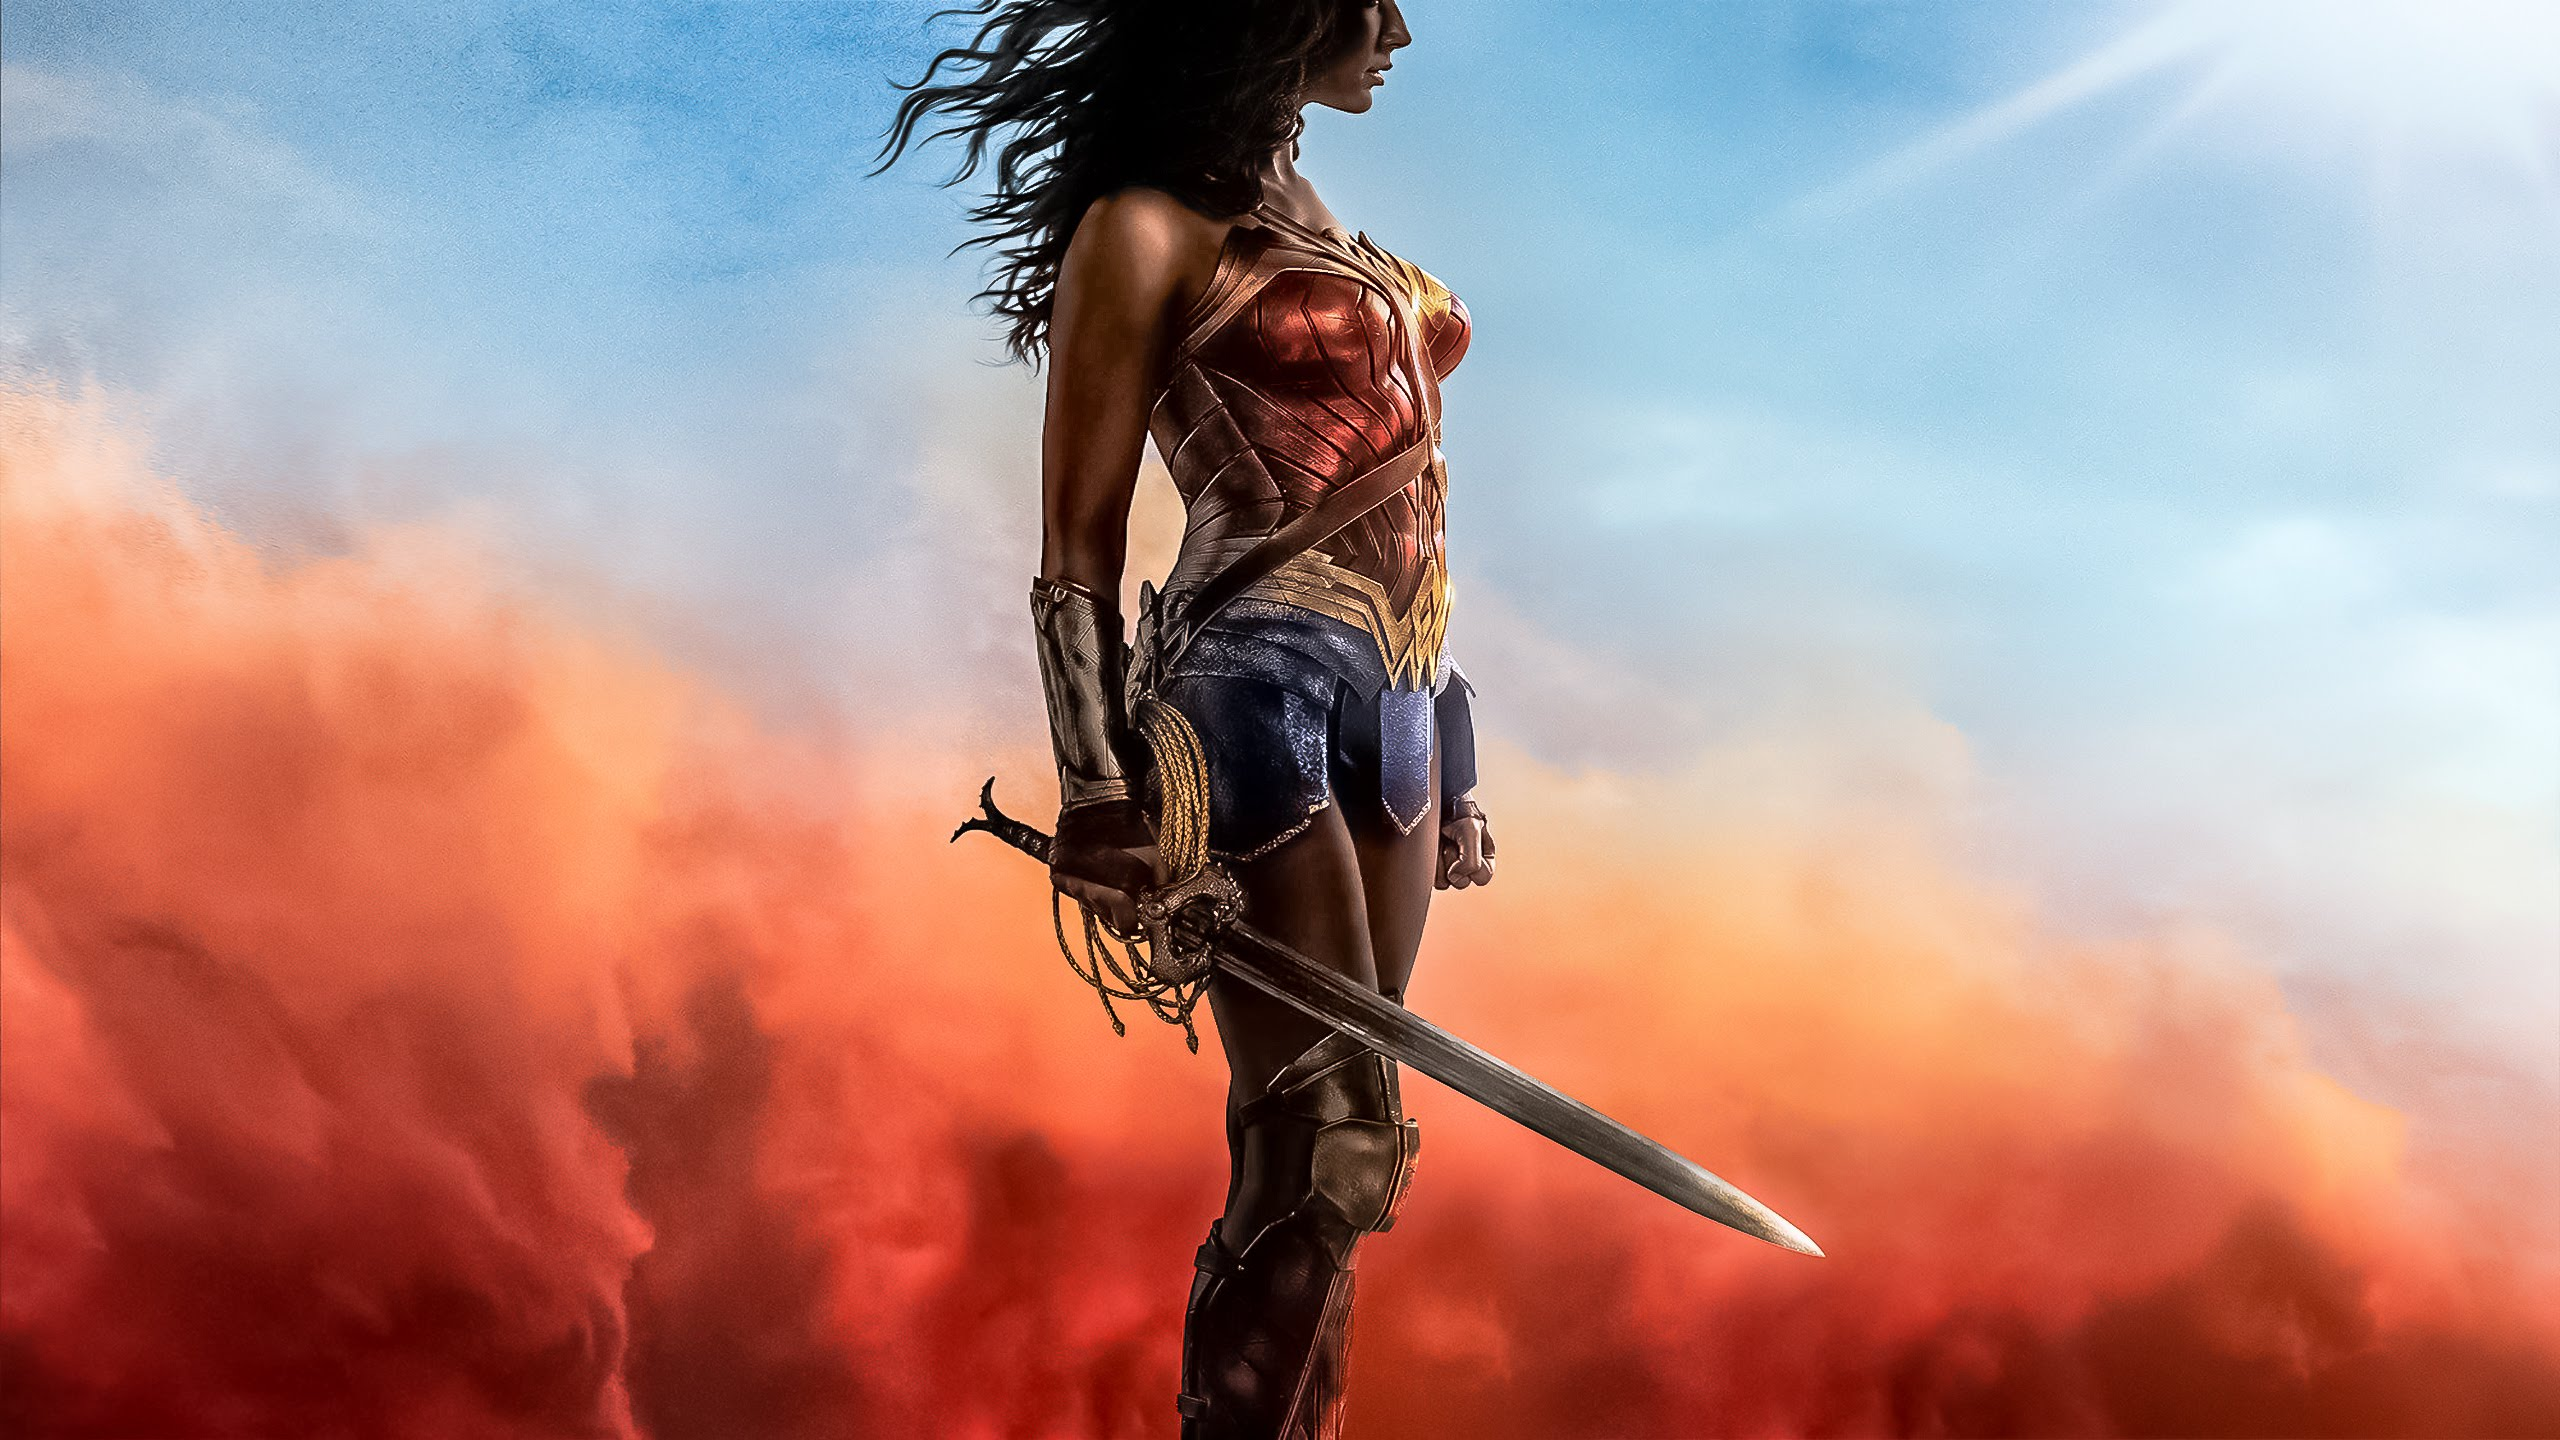 Wallpaper Wonder Woman Hd 4k 8k Movies 9526: Justice League: Zack Snyder Parla Del Futuro Di Wonder Woman